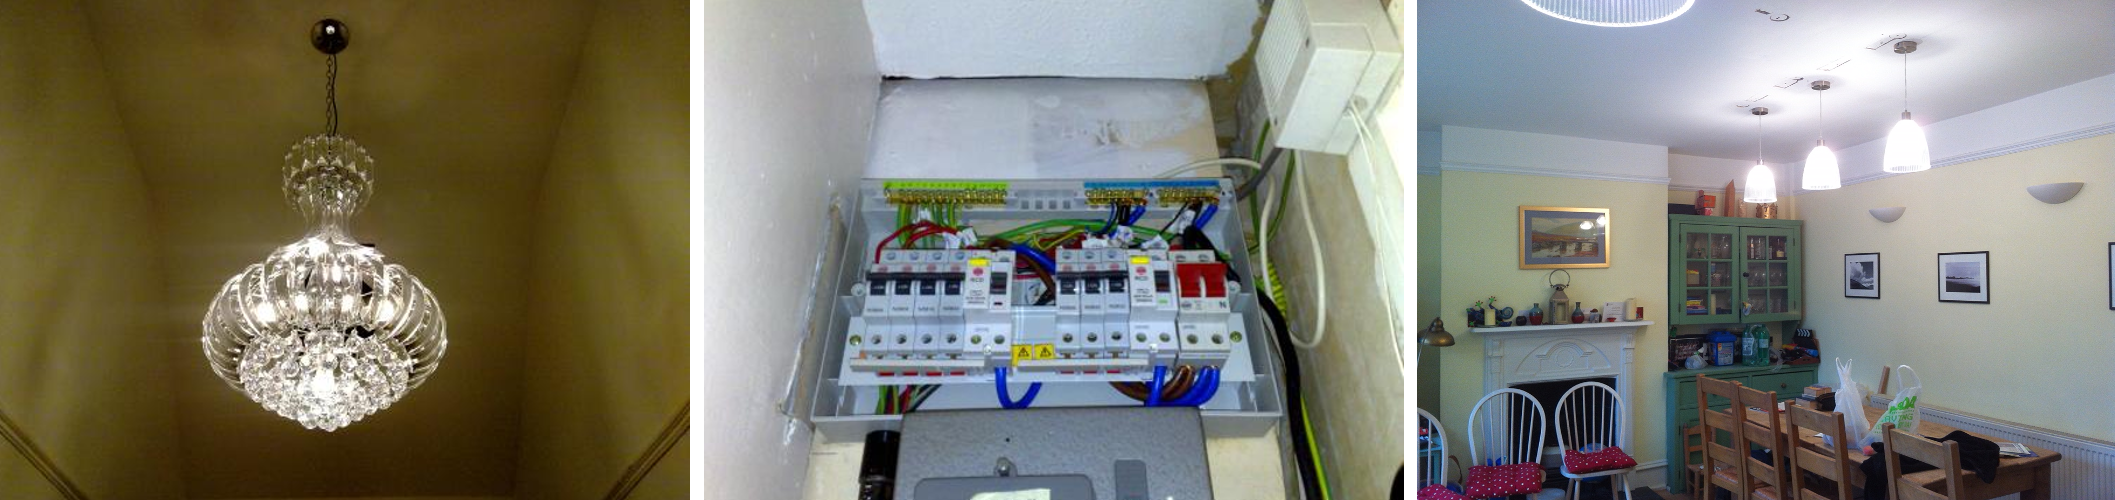 OHM electrical services london